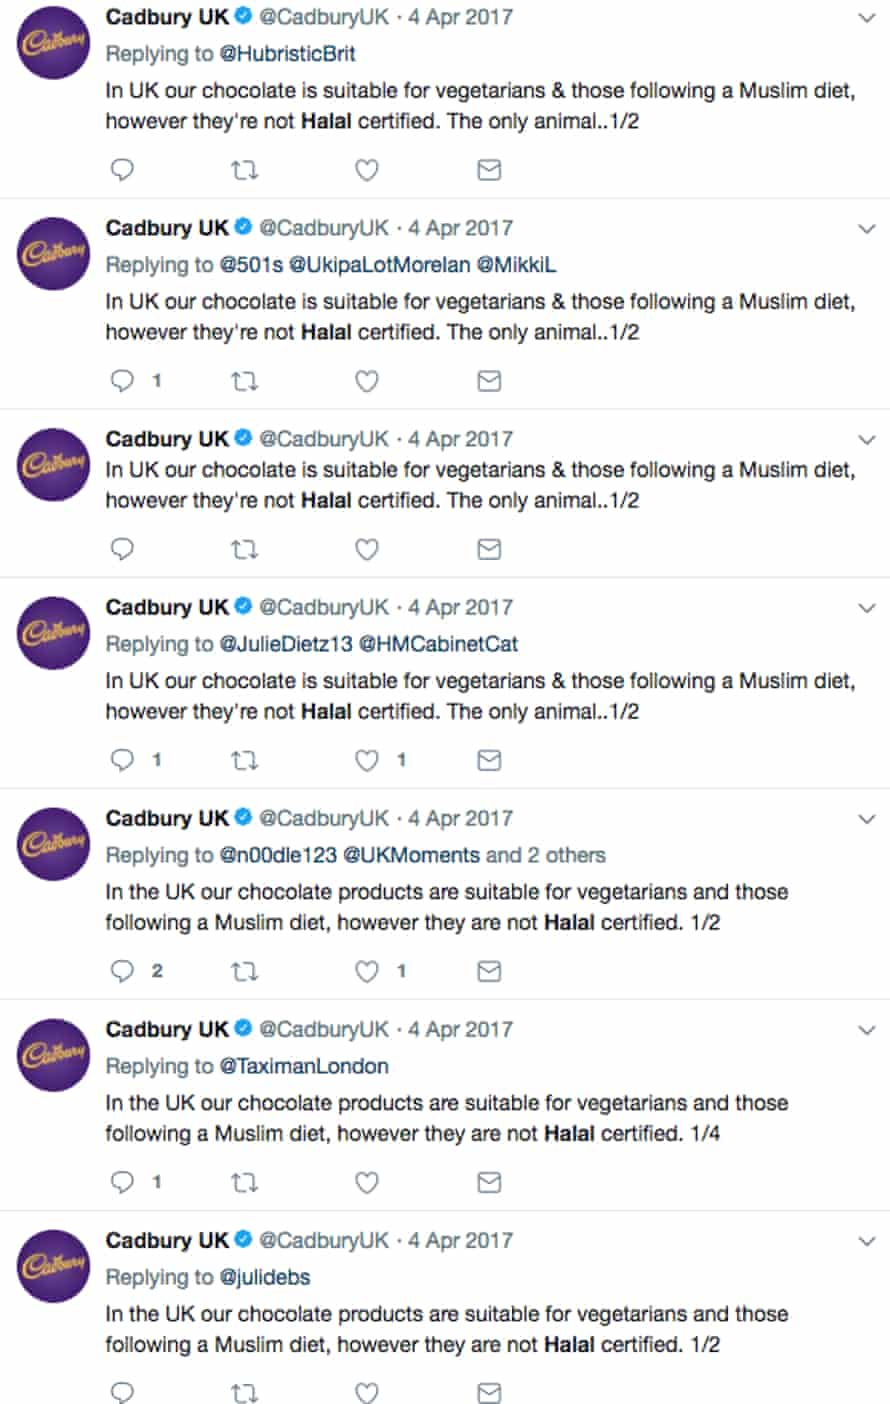 The Cadbury UK social media team responding to questions about halal Easter eggs on a particularly busy day for them in 2017